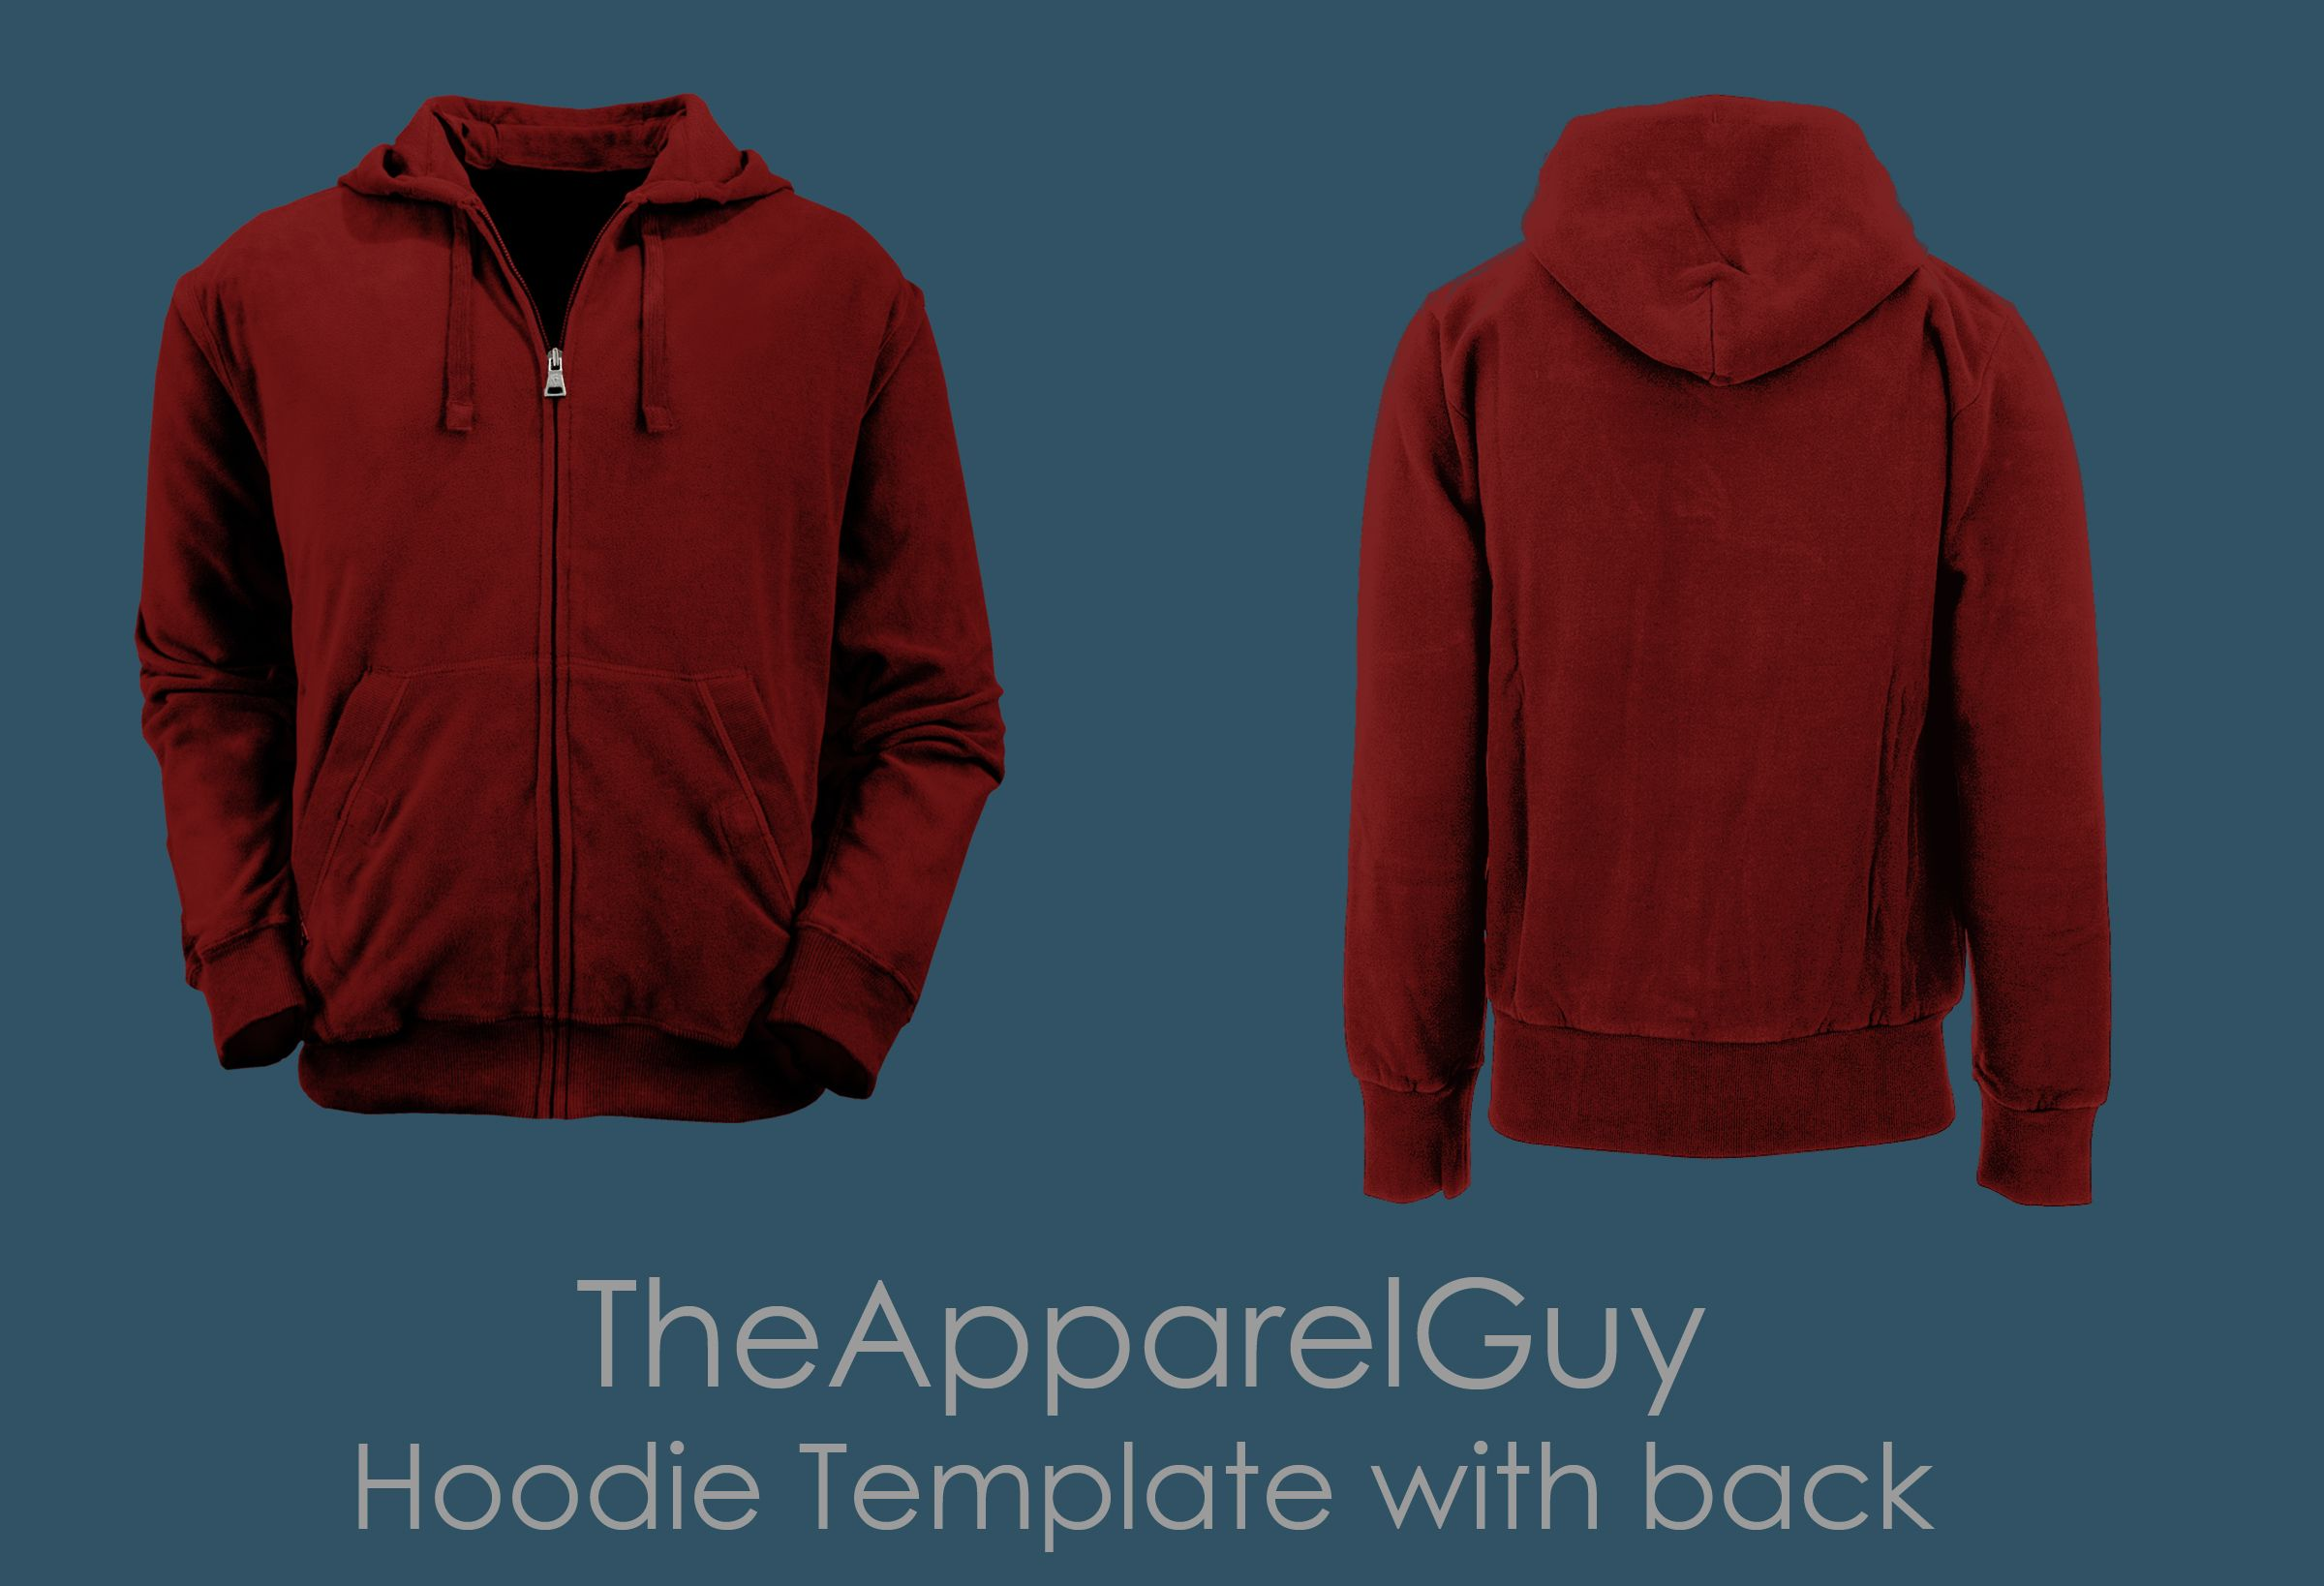 Template hoodie template and shirt design template photoshop - Hoodie Template With Back By Theapparelguy Deviantart Com On Deviantart